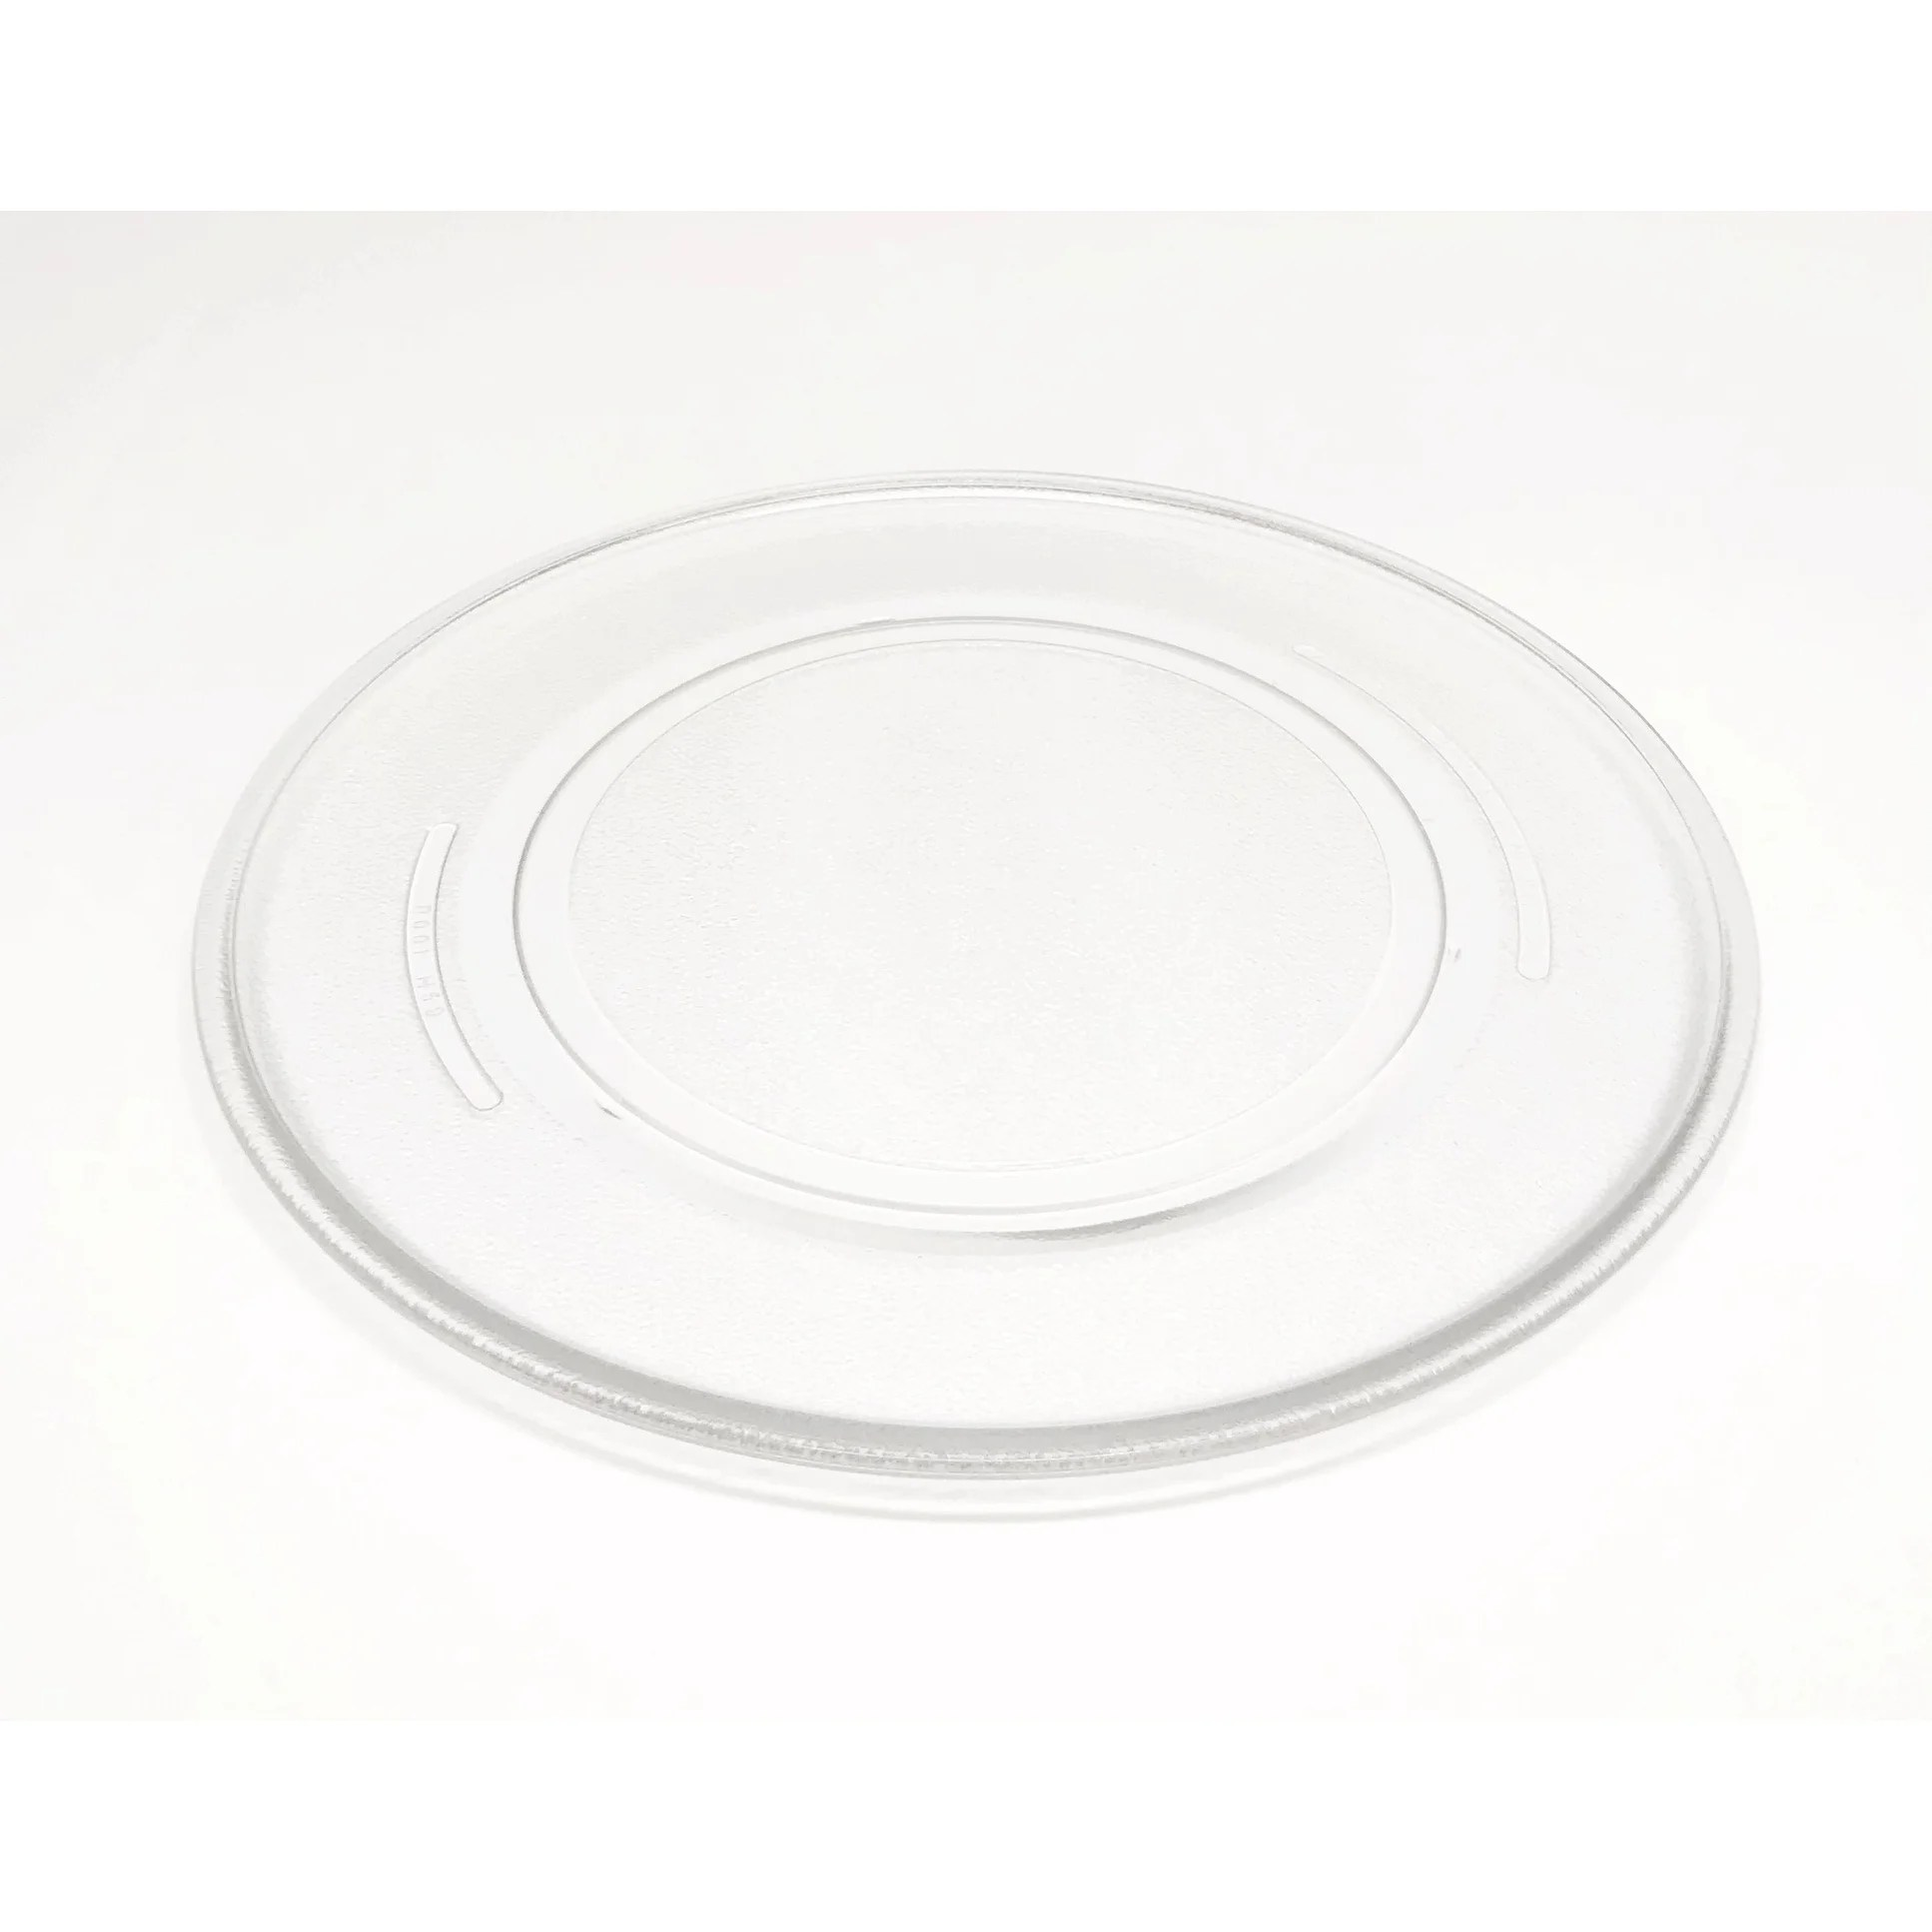 Microwave Plate Oem Sharp Microwave Turntable Glass Tray Plate Shipped With R509bk R 509bk